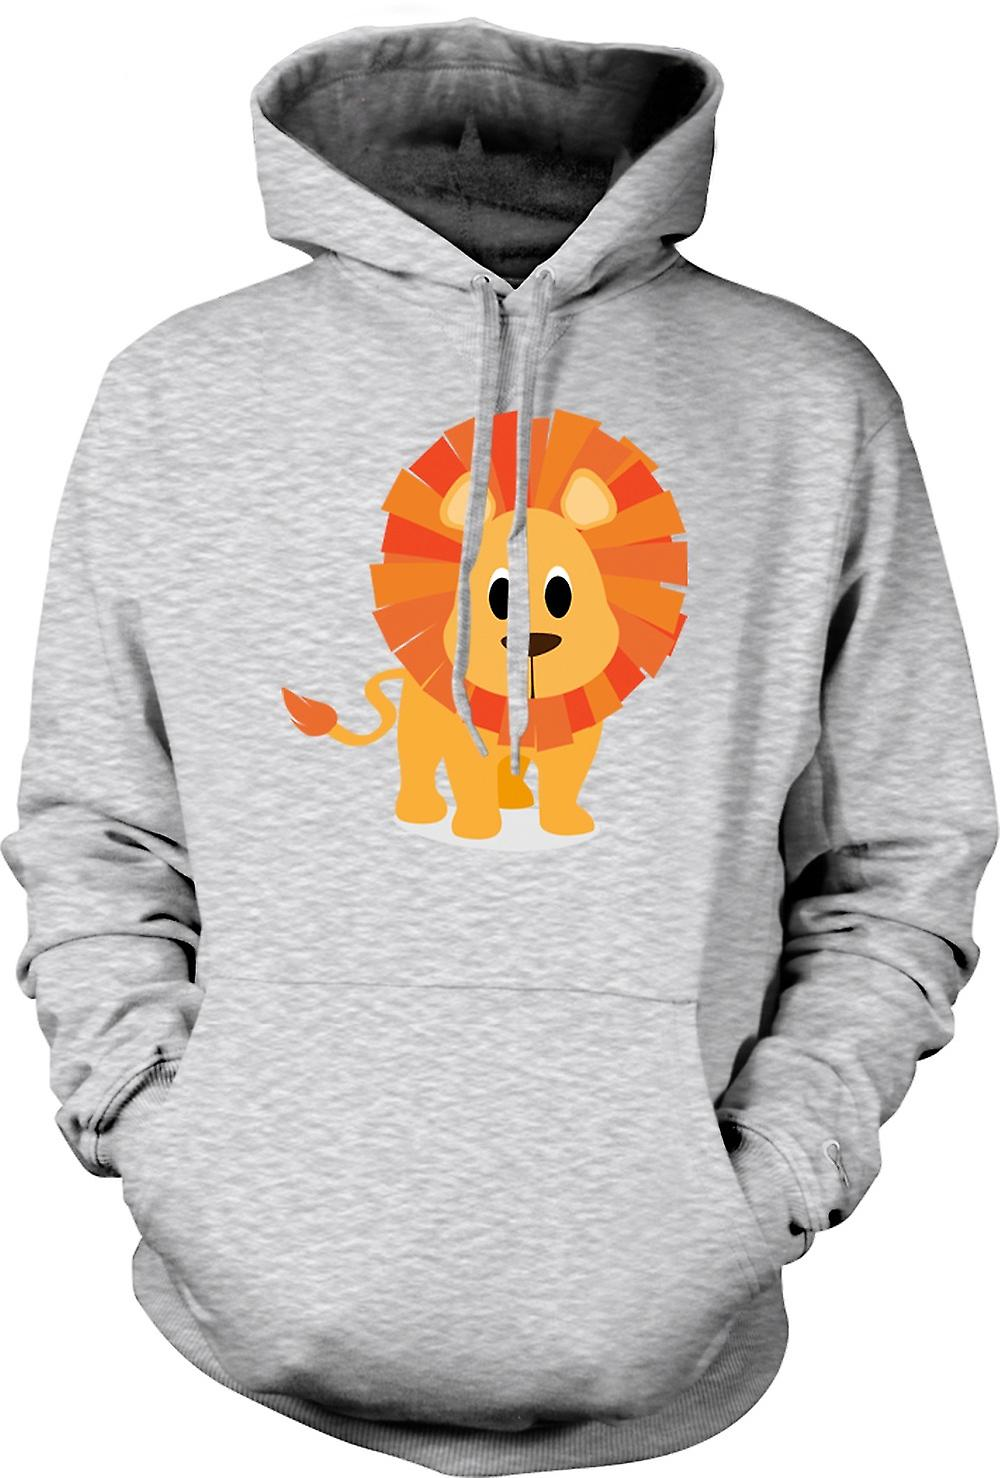 Mens Hoodie - I Love Lions - Cute Animal